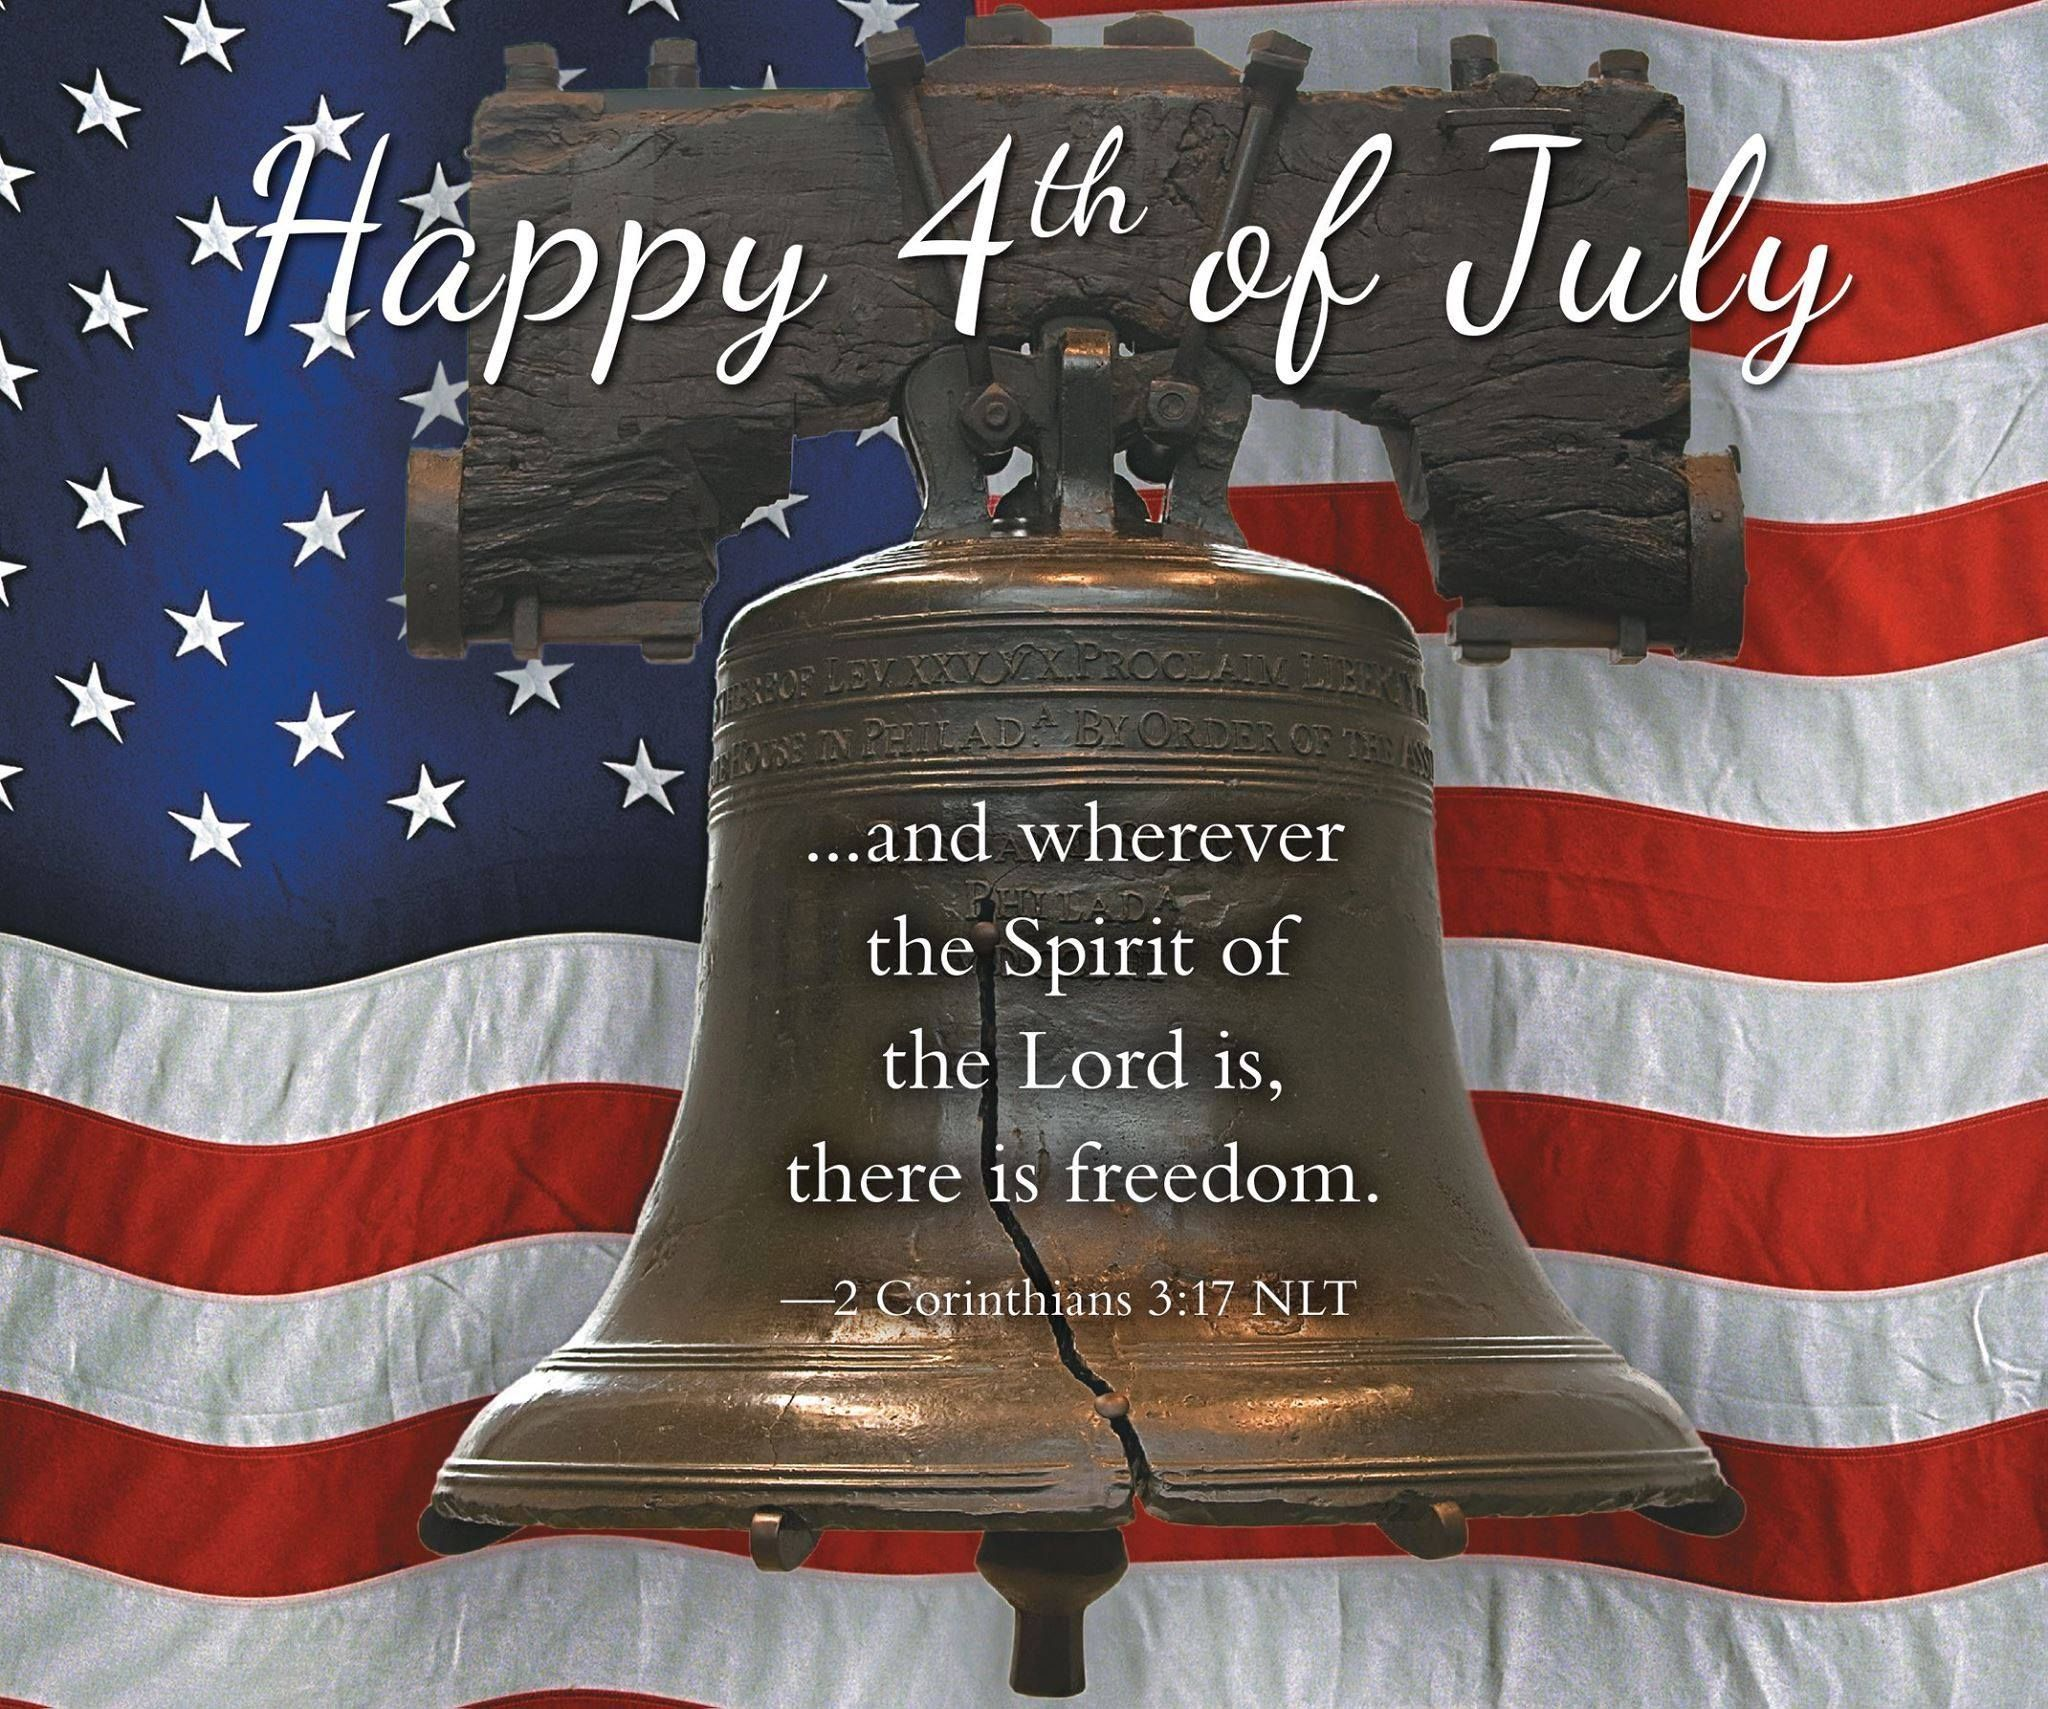 4Th Of July Quotes Religious Happy 4Th Of Jul Quote 4Th Of July Fourth Of July Happy